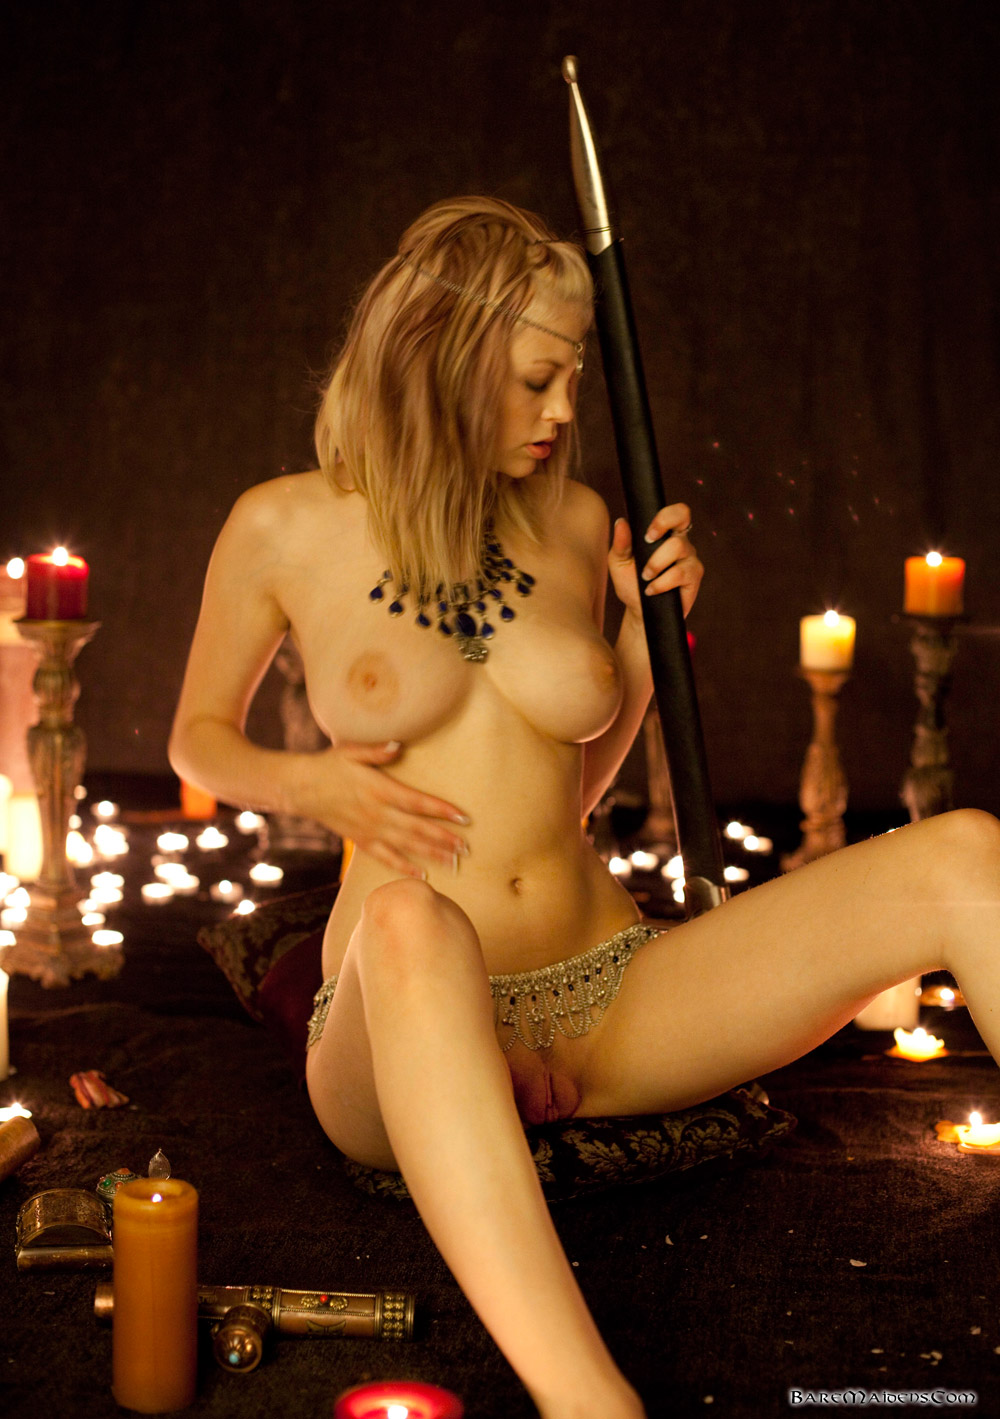 Excellent message hot naked girls on fire